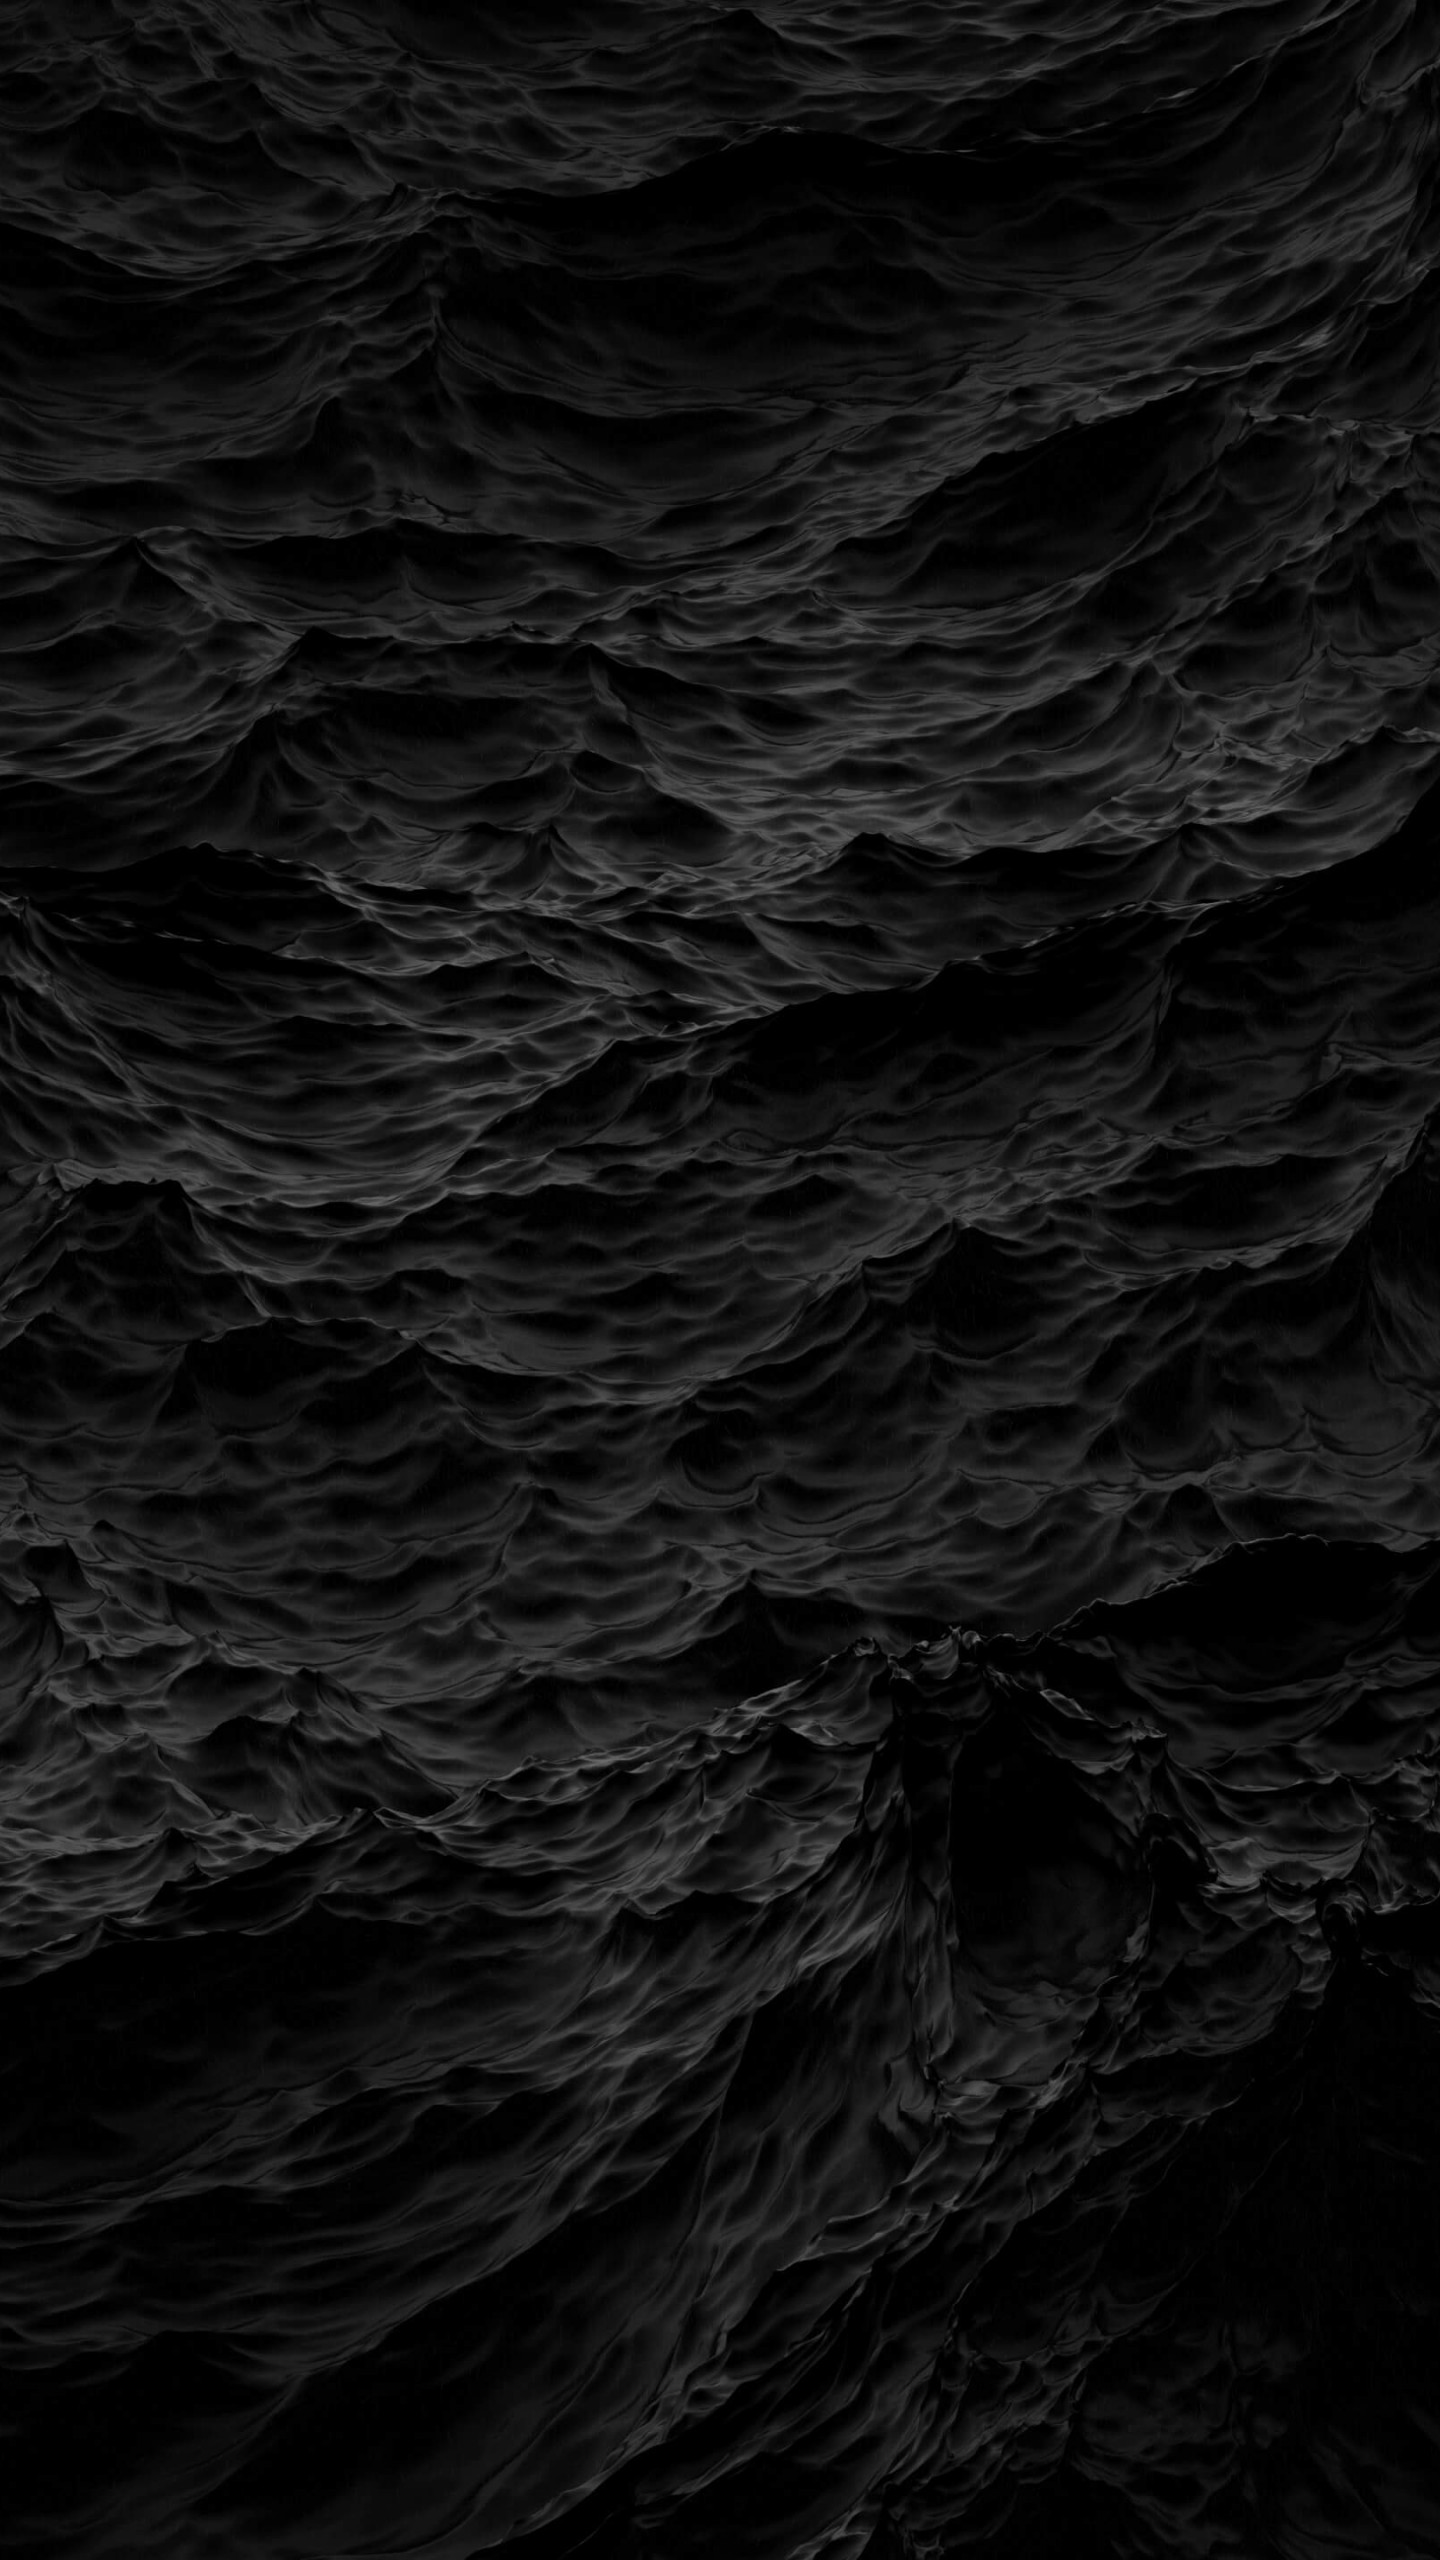 Black Waves Wallpaper for SAMSUNG Galaxy S6